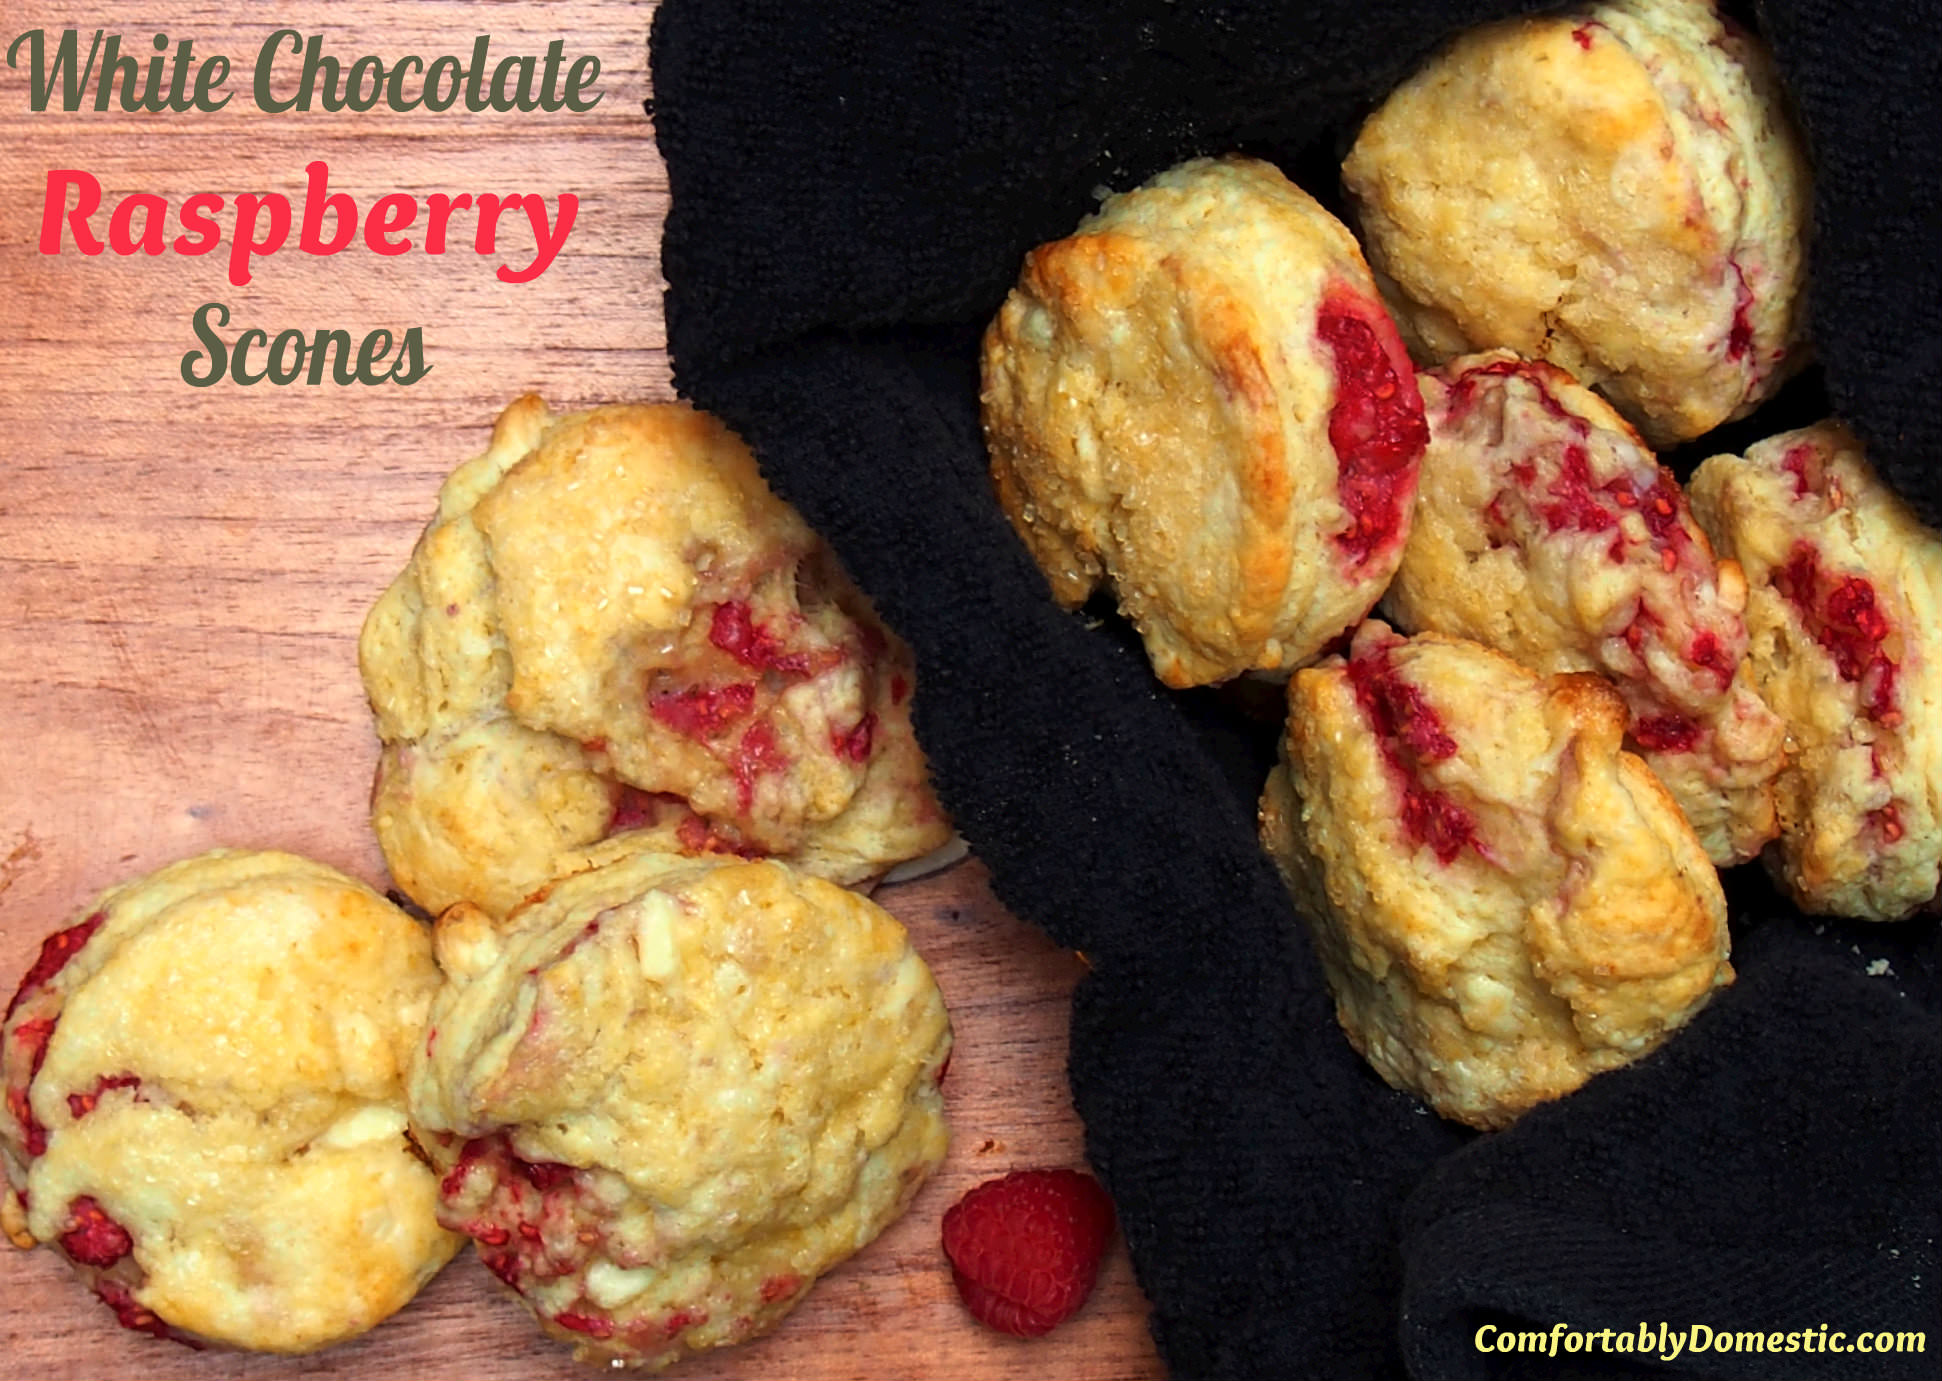 White Chocolate Raspberry Scones by ComfortablyDomestic.com